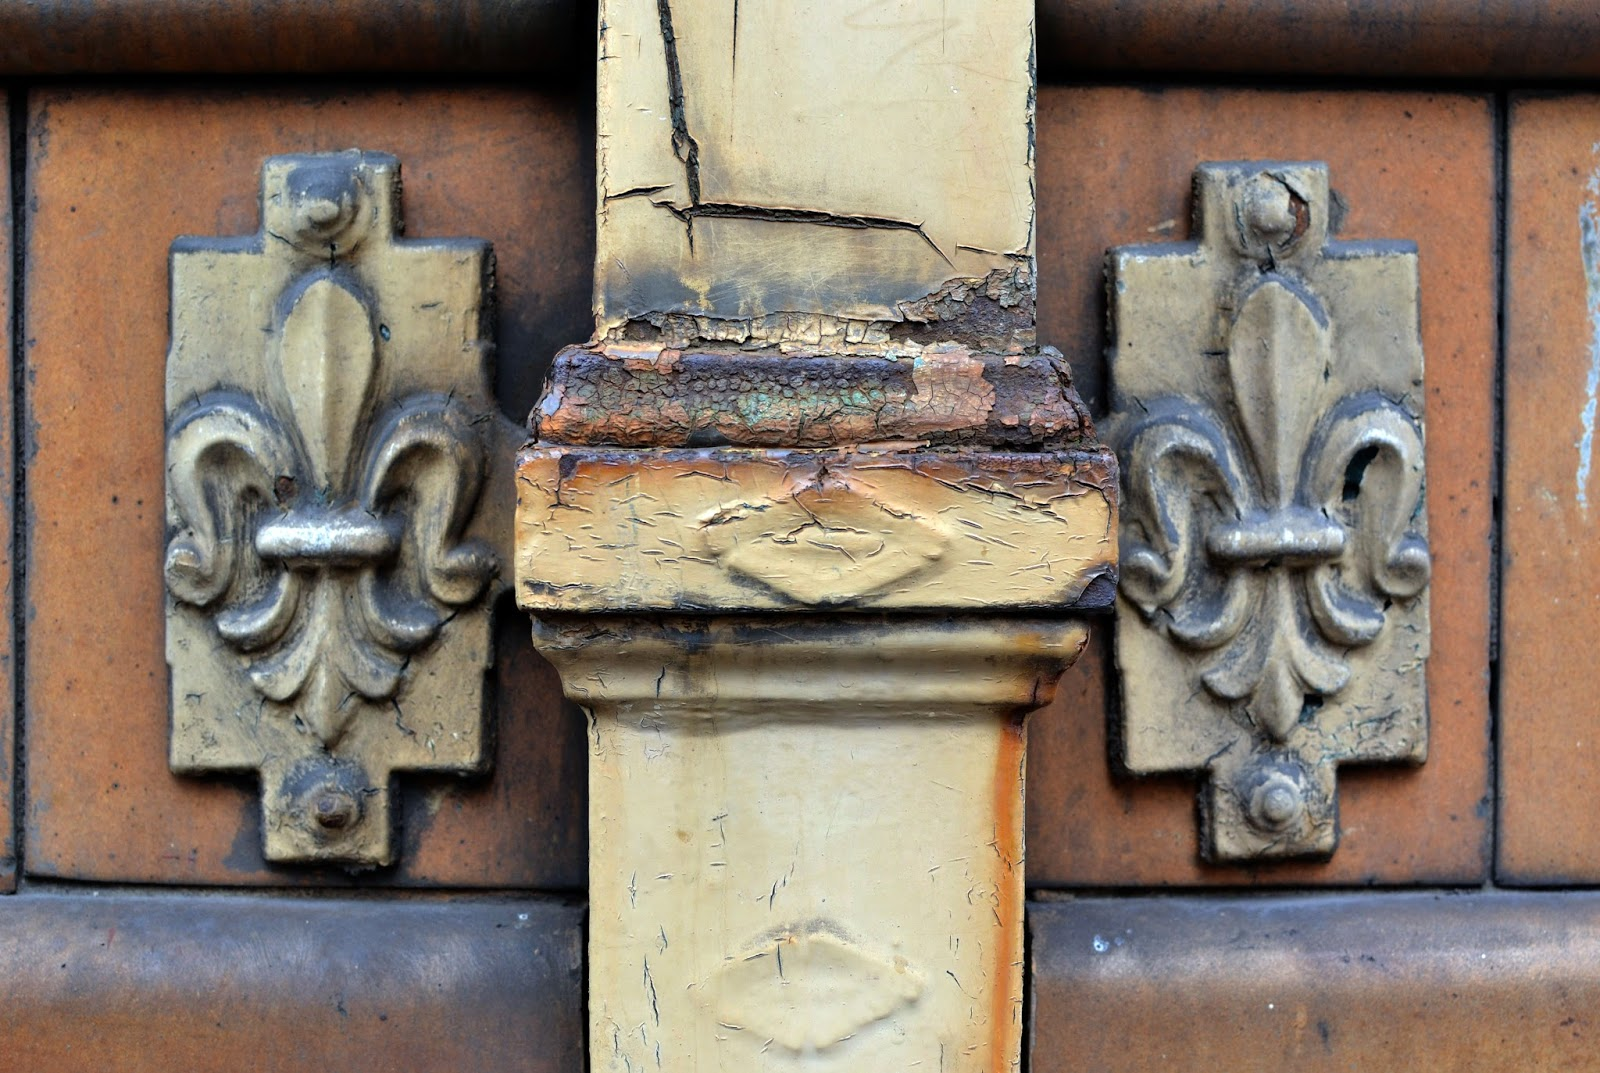 London Road fire station, Details, exploring city, close up photography, manchester, urbex, ephemera, urban narrative